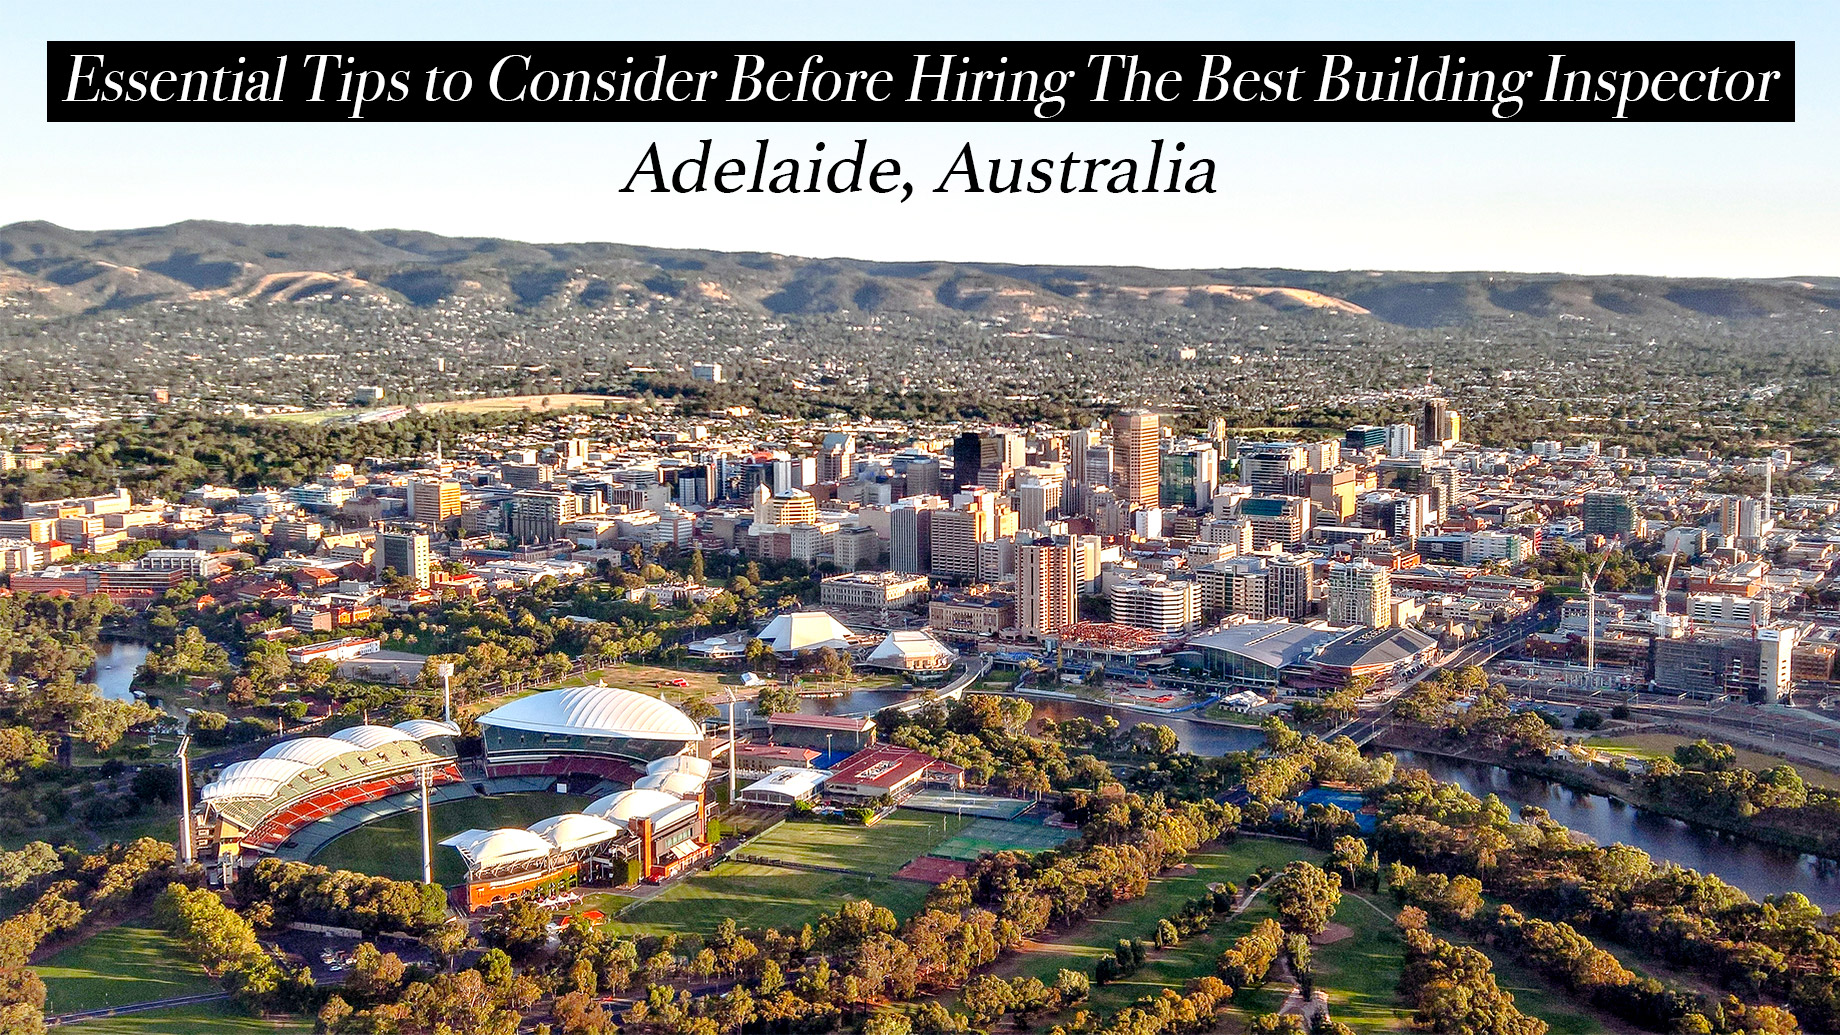 Essential Tips to Consider Before Hiring The Best Building Inspector in Adelaide, Australia